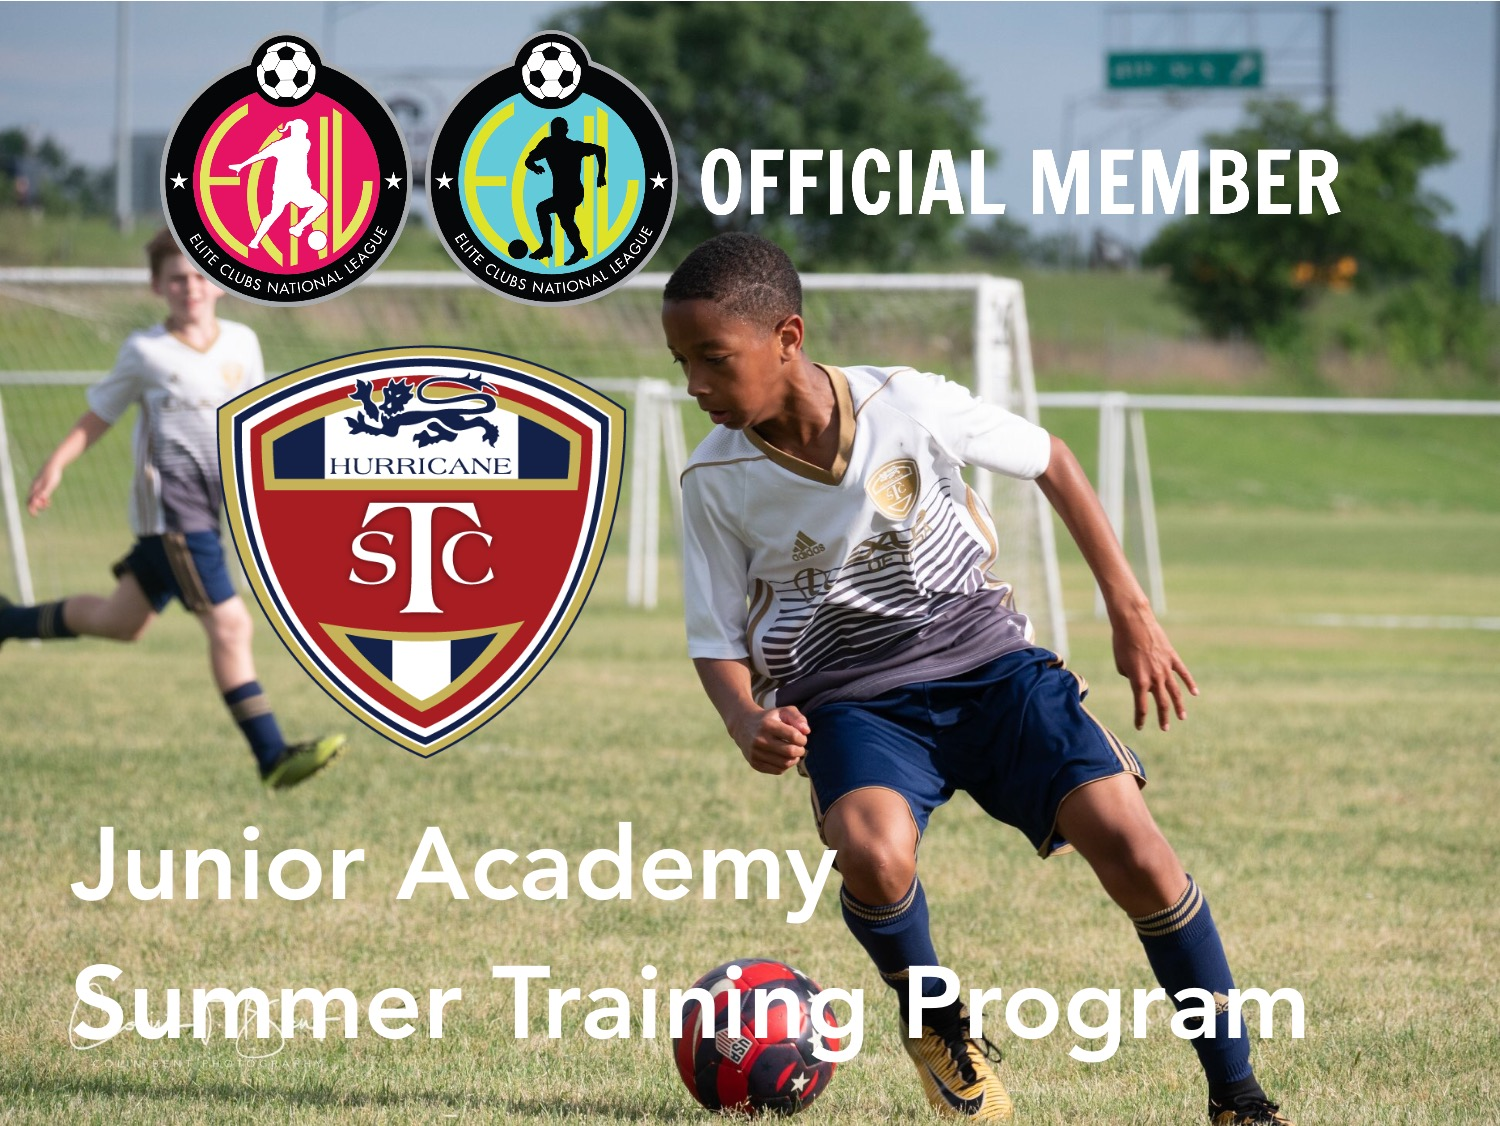 Junior Academy Summer Training Program